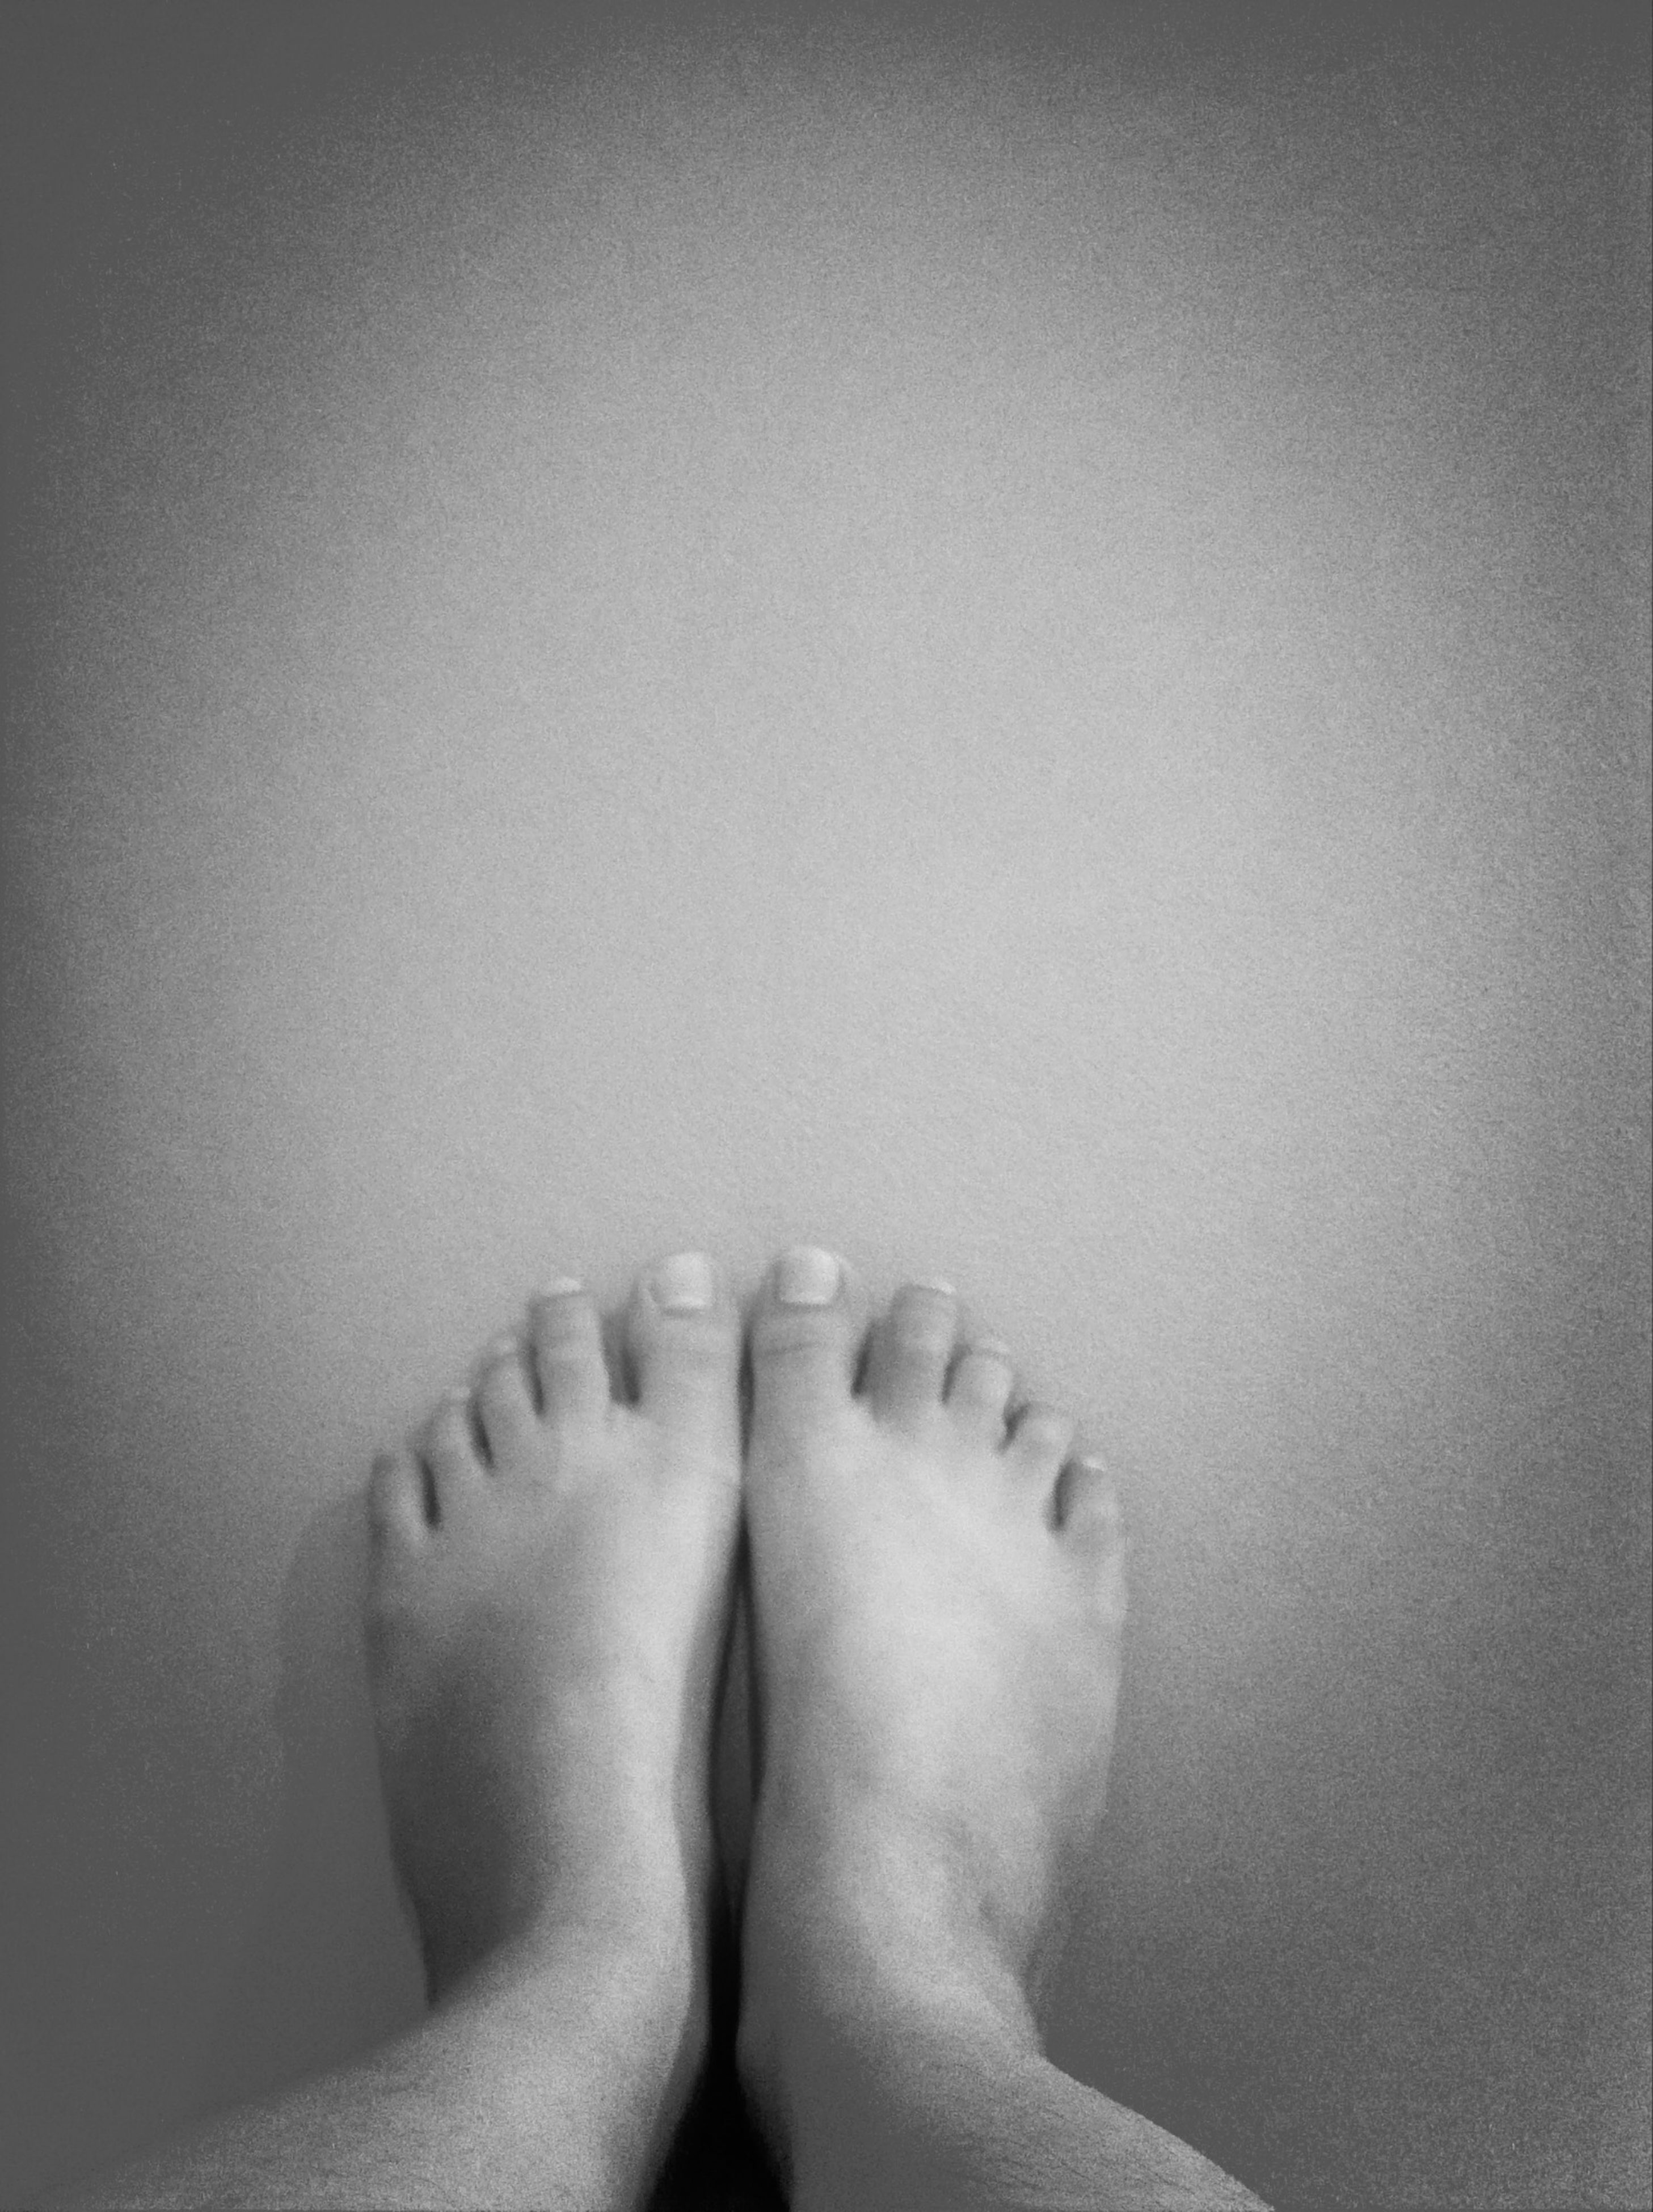 indoors, lifestyles, person, low section, barefoot, leisure activity, sensuality, human foot, part of, wall - building feature, human skin, home interior, personal perspective, femininity, relaxation